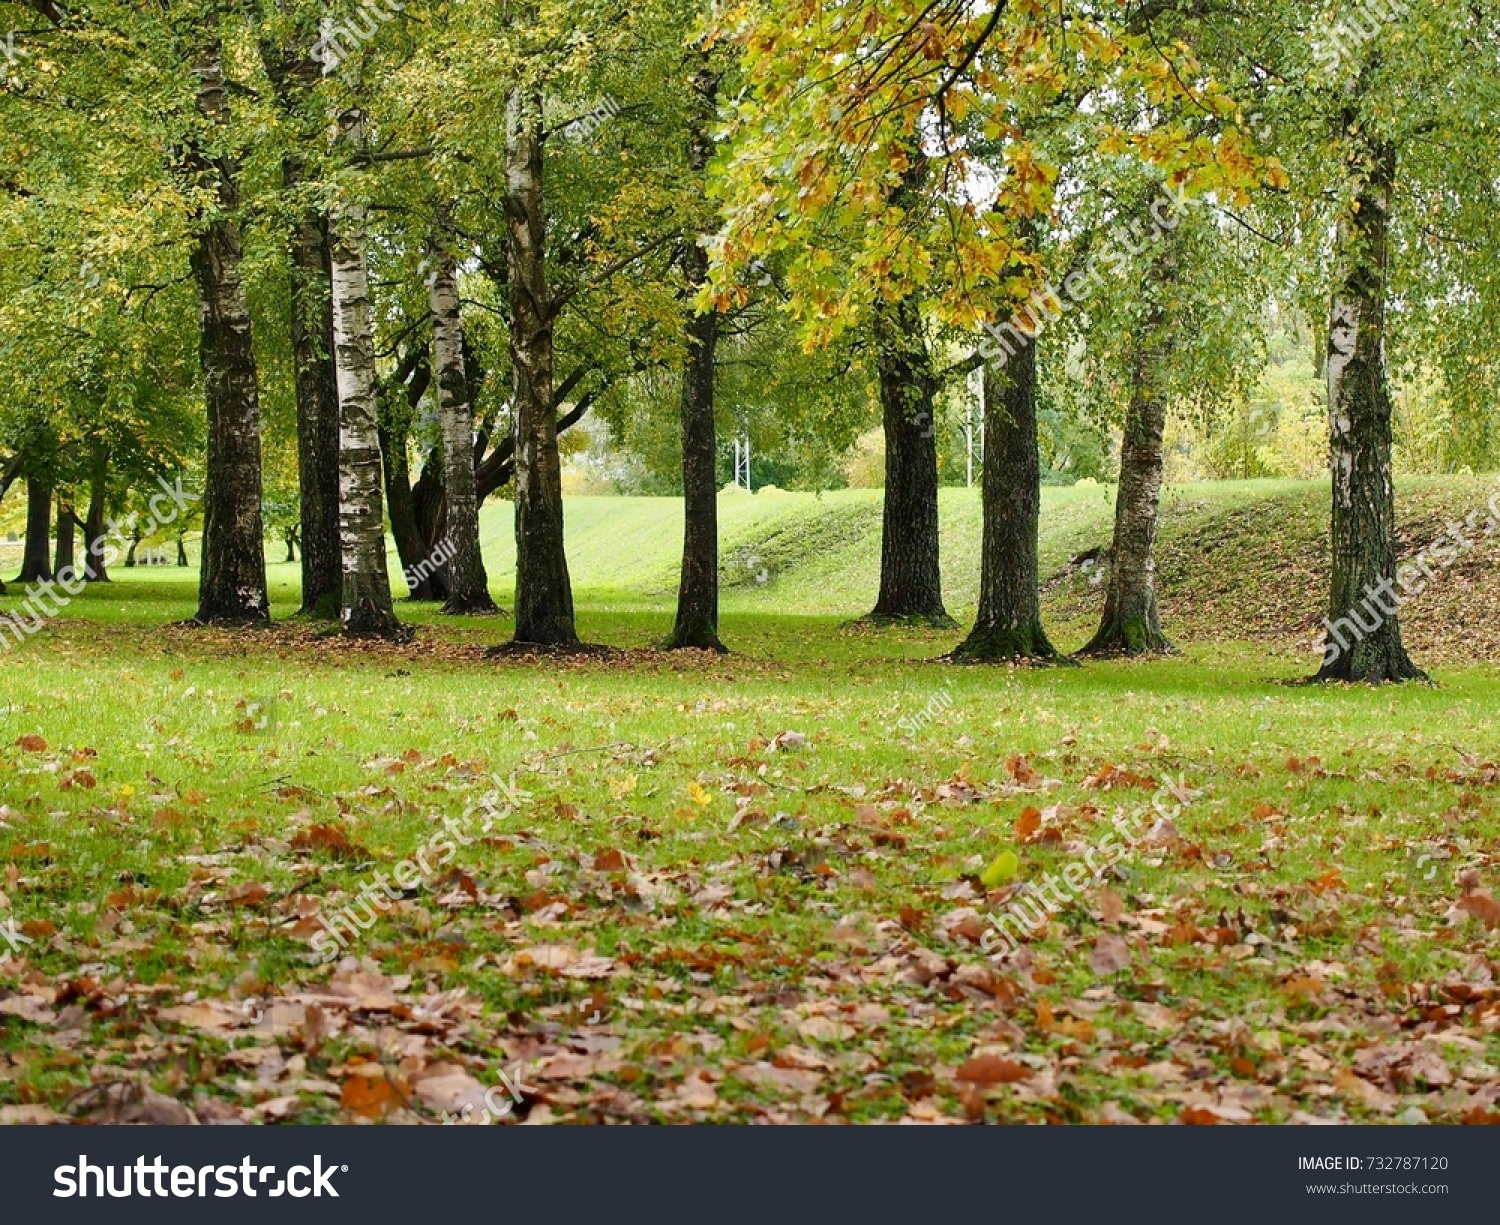 Autumn Park Trees Leaves On Grass Stock Photo (Royalty Free ...